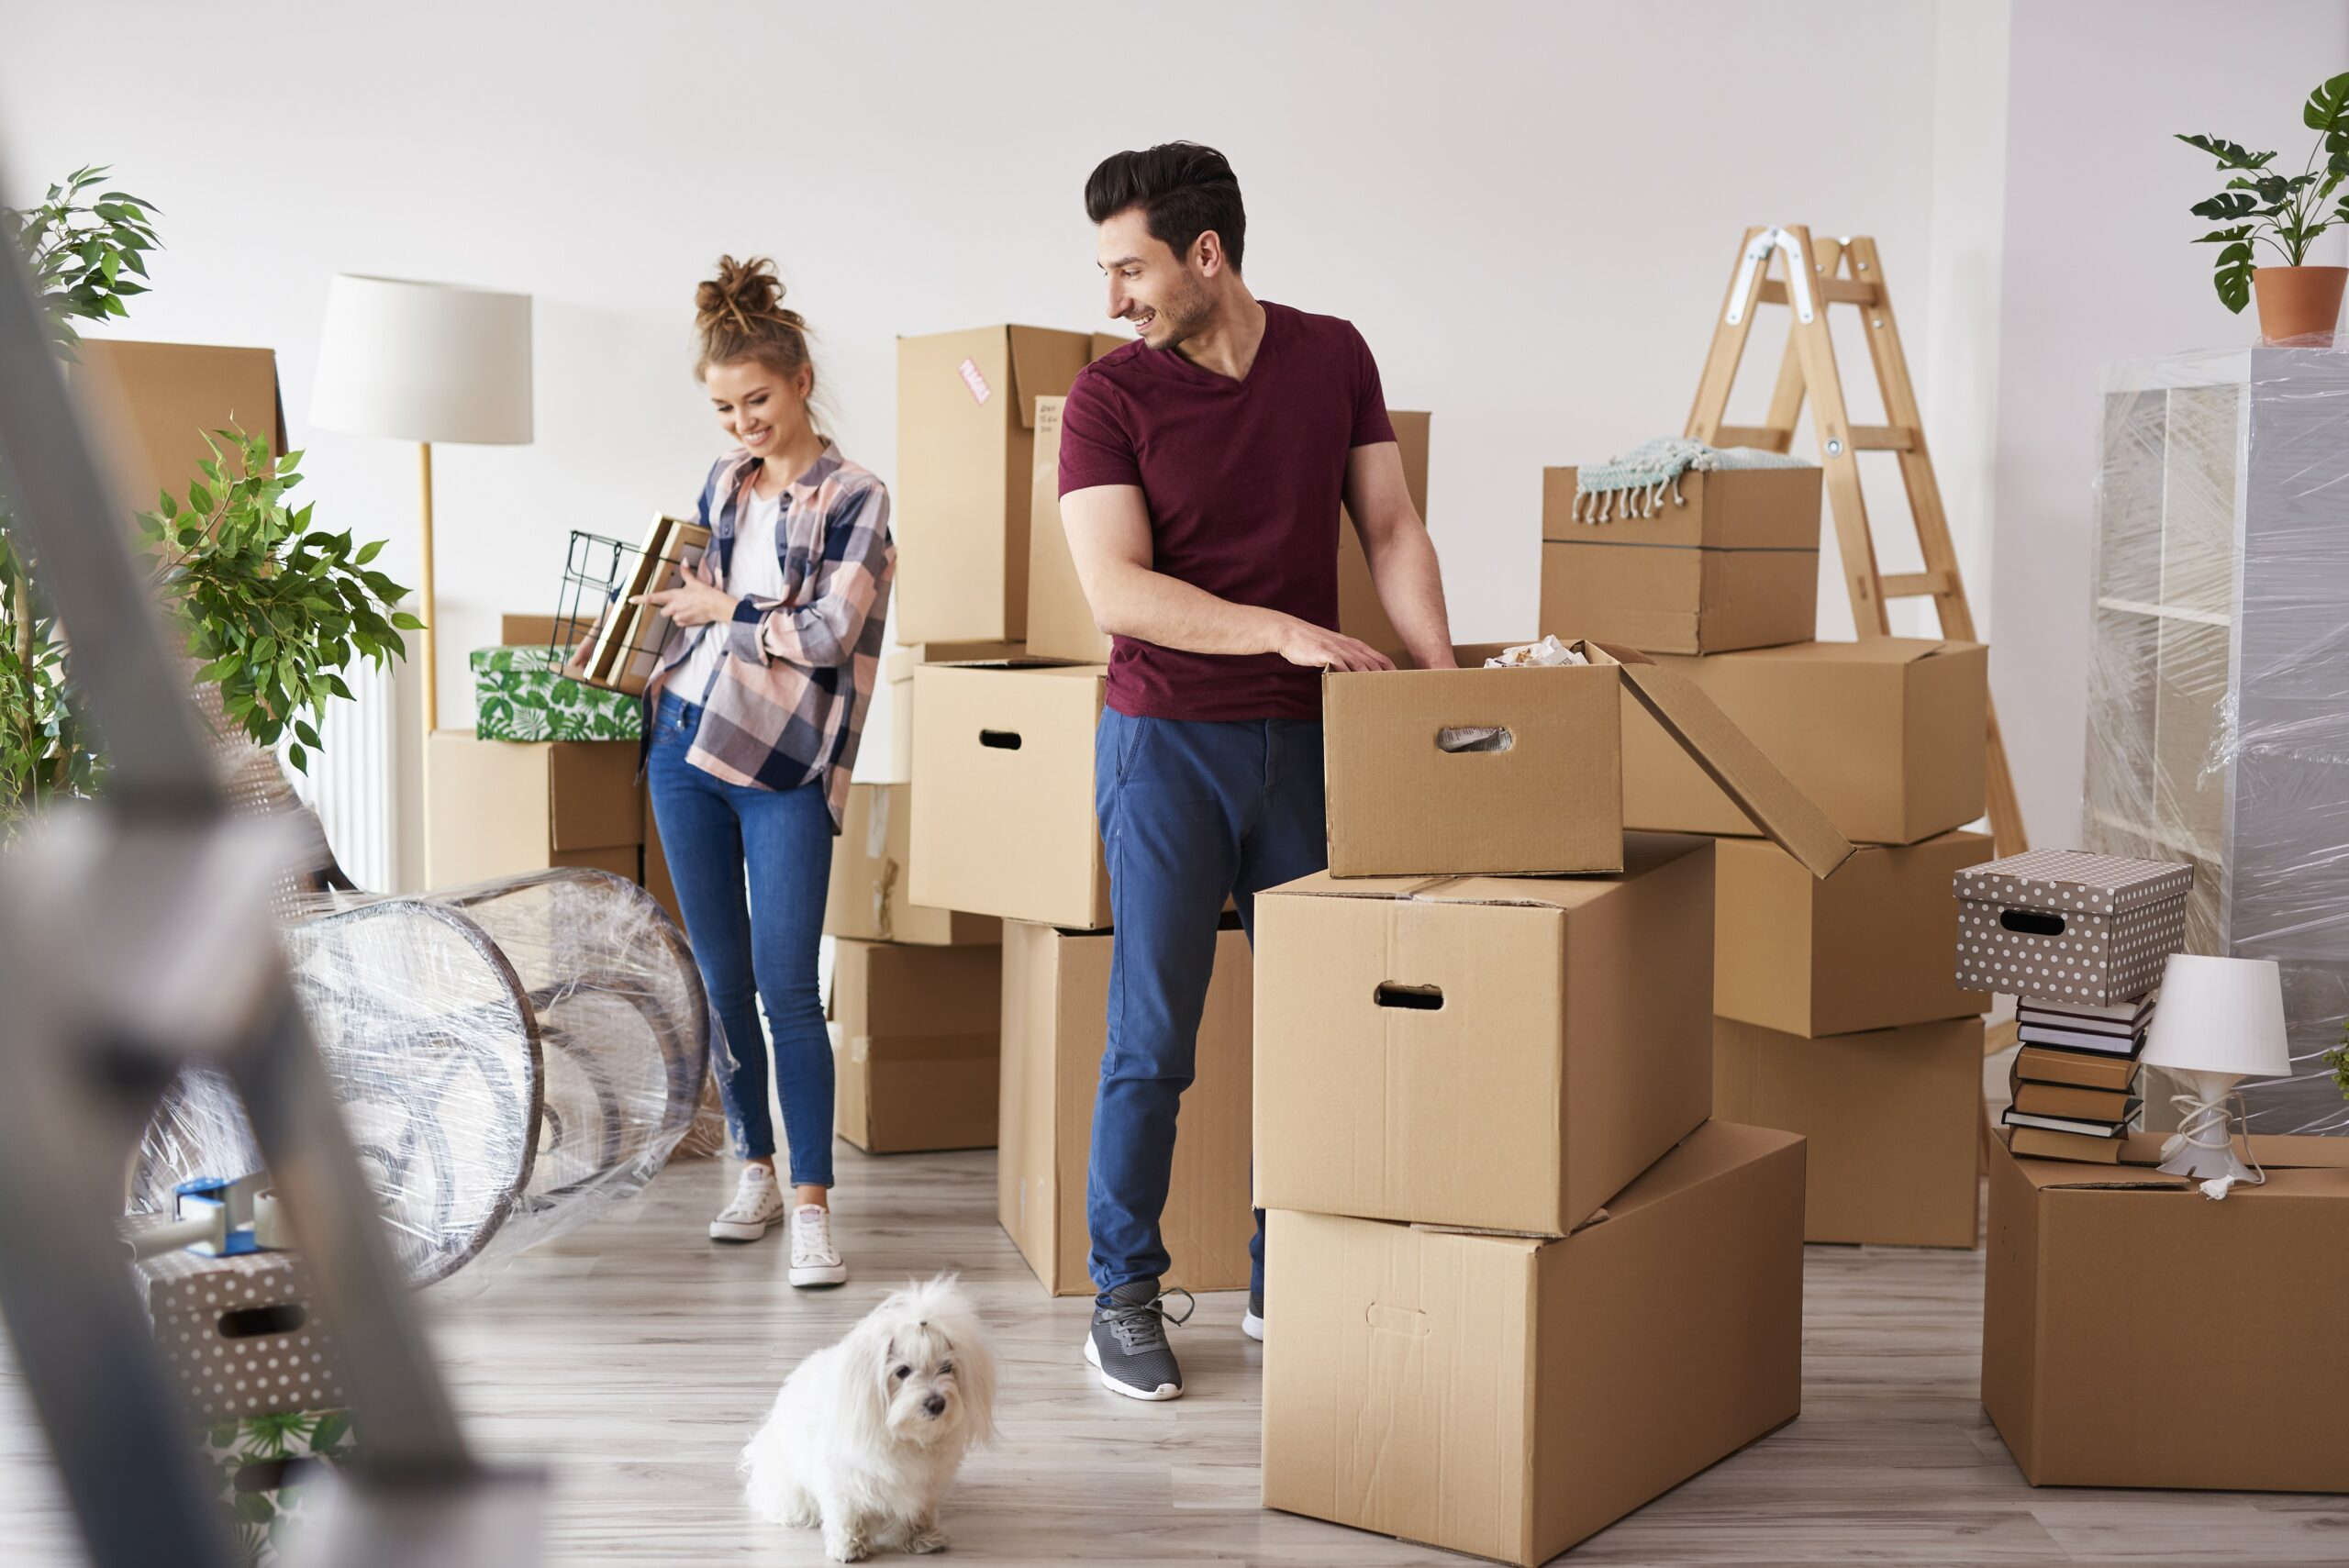 Top Ways Self-Storage Can Help When Moving House